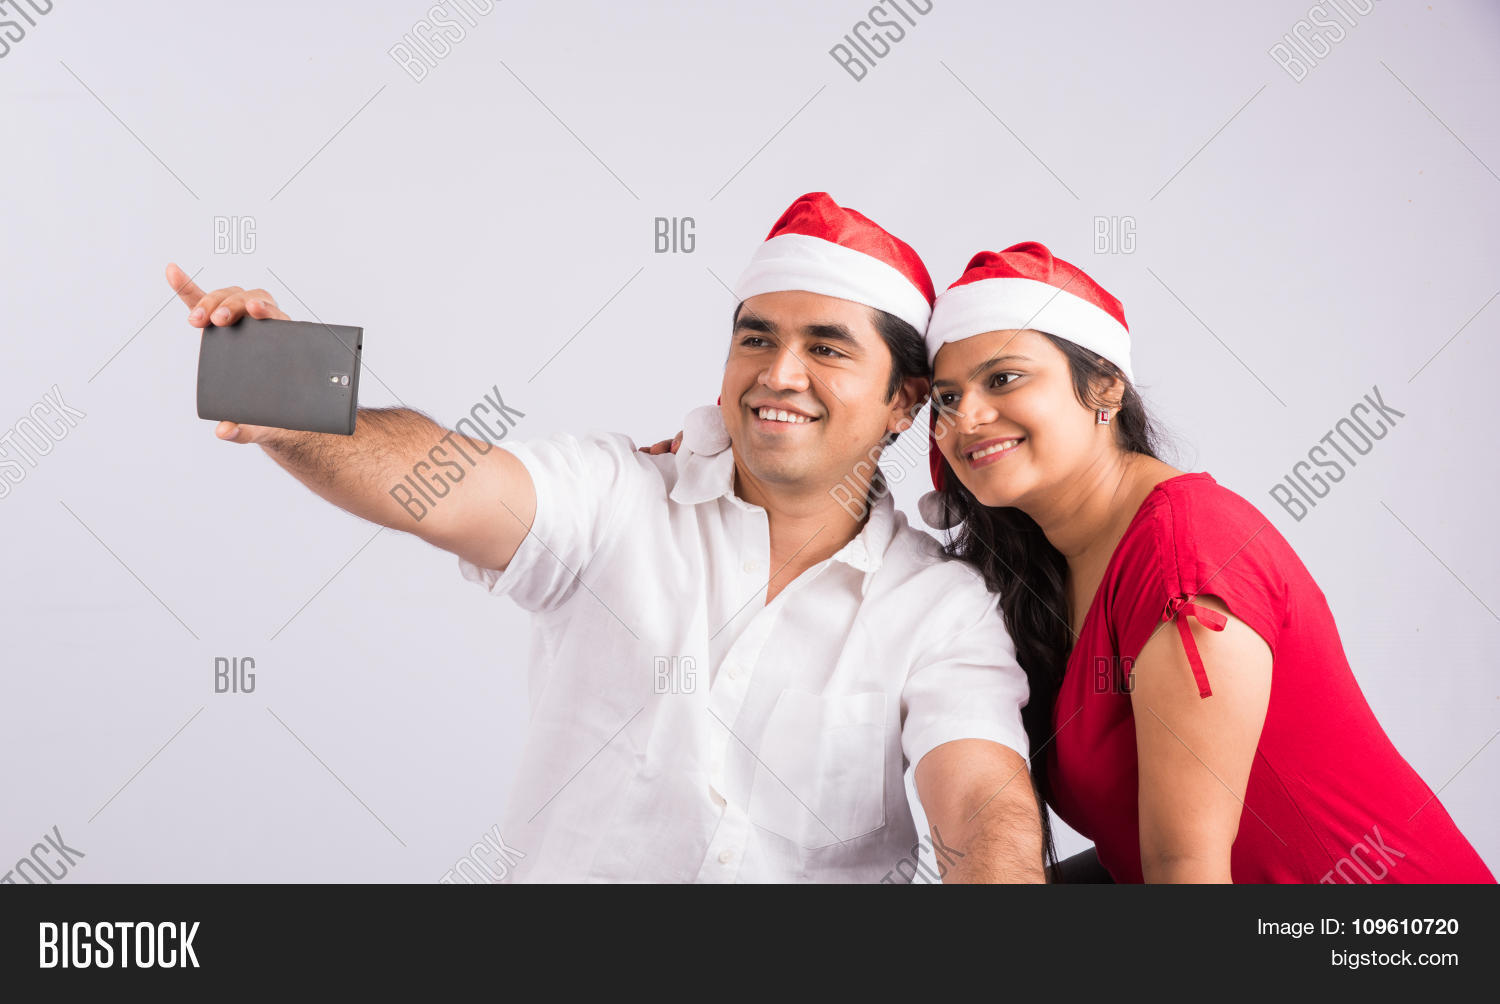 Indian Young Couple Image & Photo (Free Trial) | Bigstock